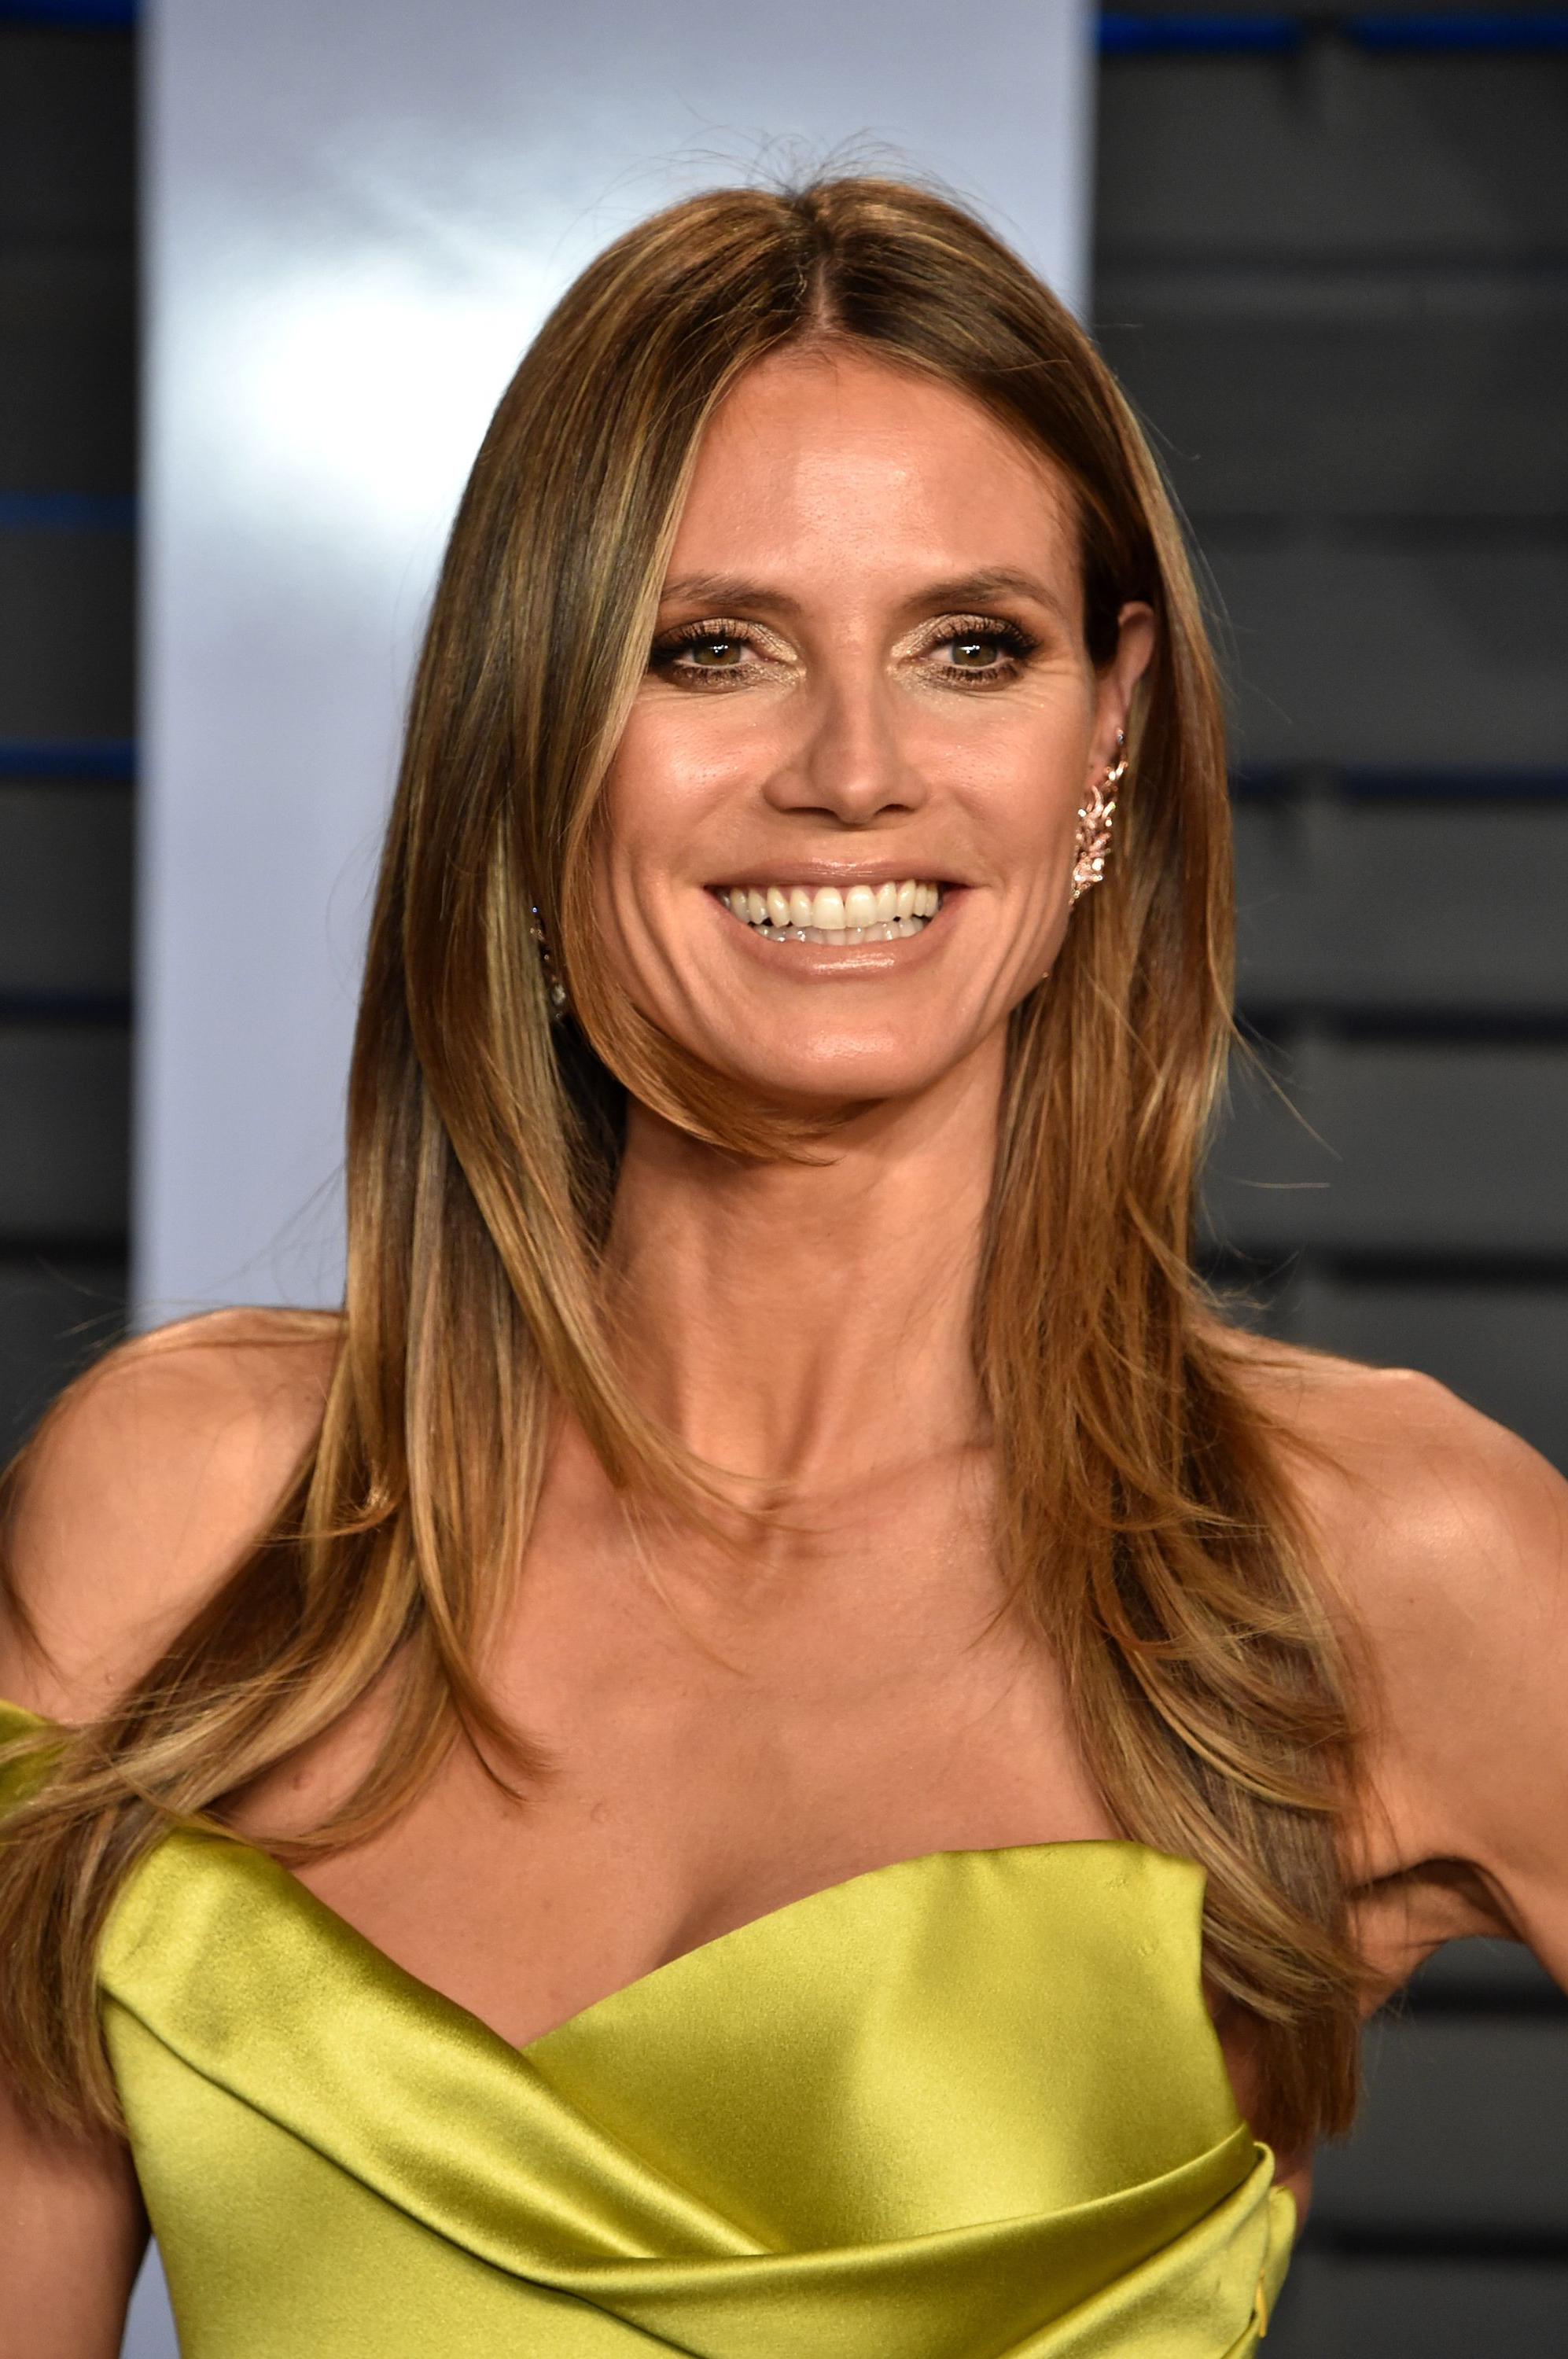 60 Layered Hairstyles & Cuts For Long Hair – Long, Layered Hair Ideas Intended For Heidi Klum Short Haircuts (Gallery 23 of 25)